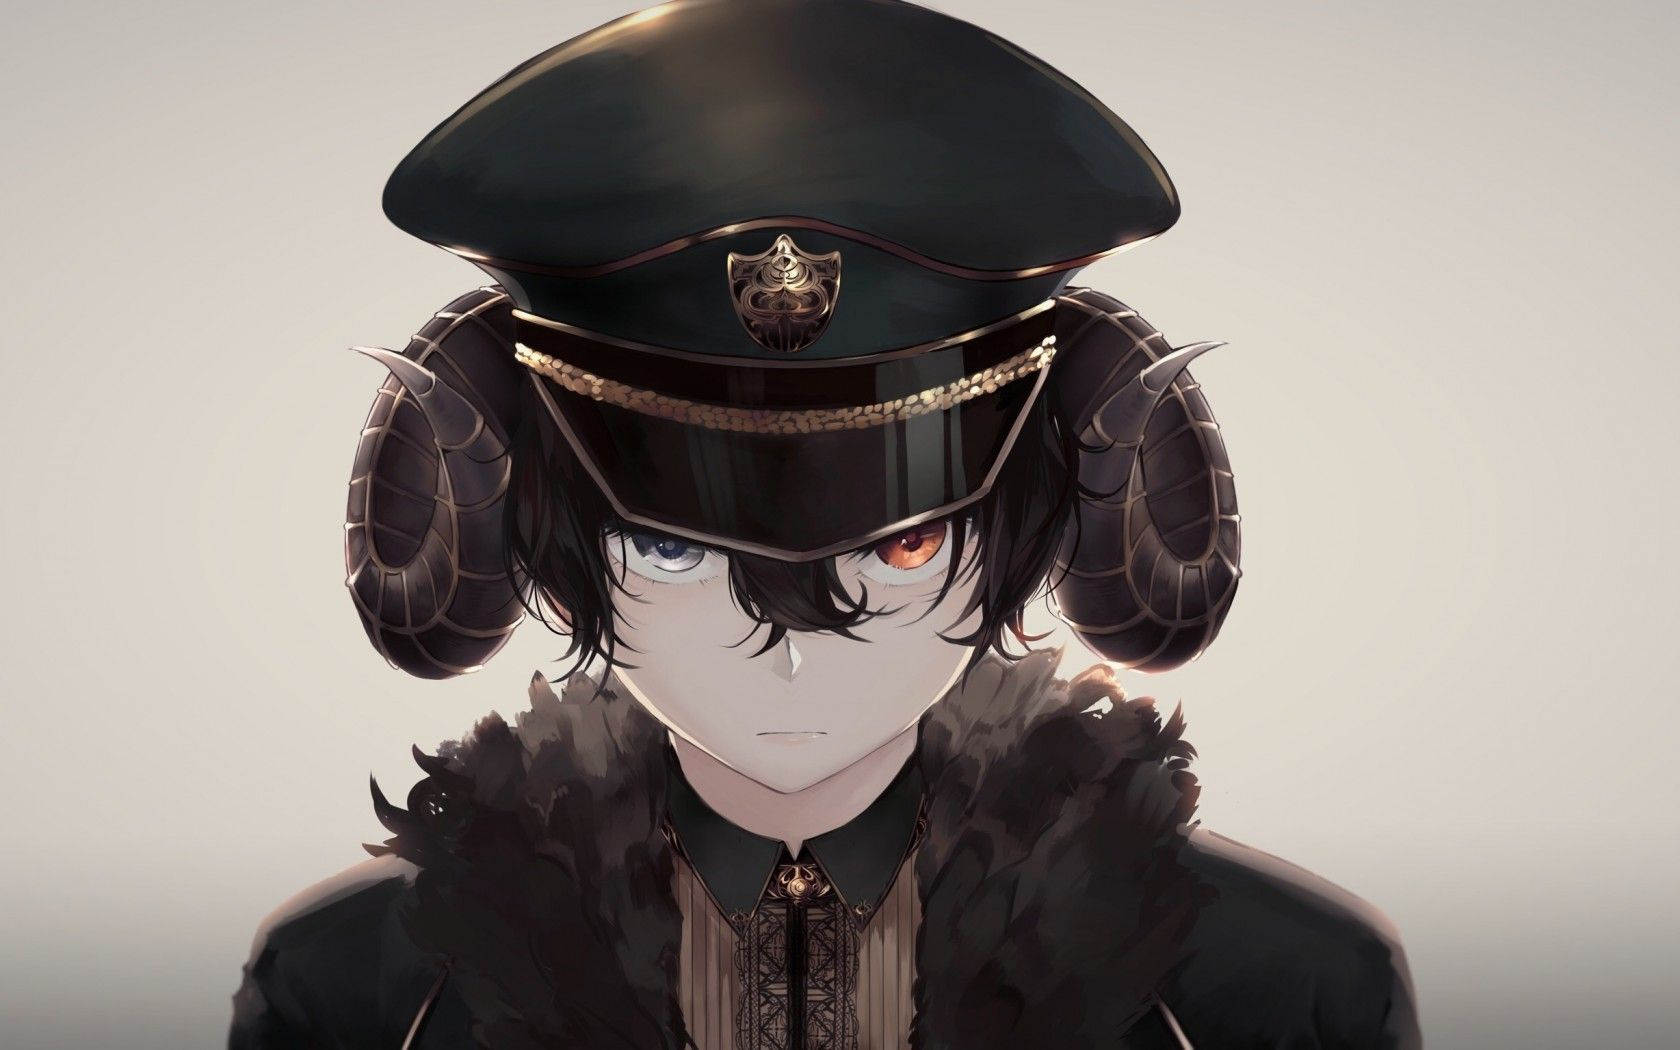 Anime Boy, Creepy, Horns, Hat, Uniform, Bicolored Eyes